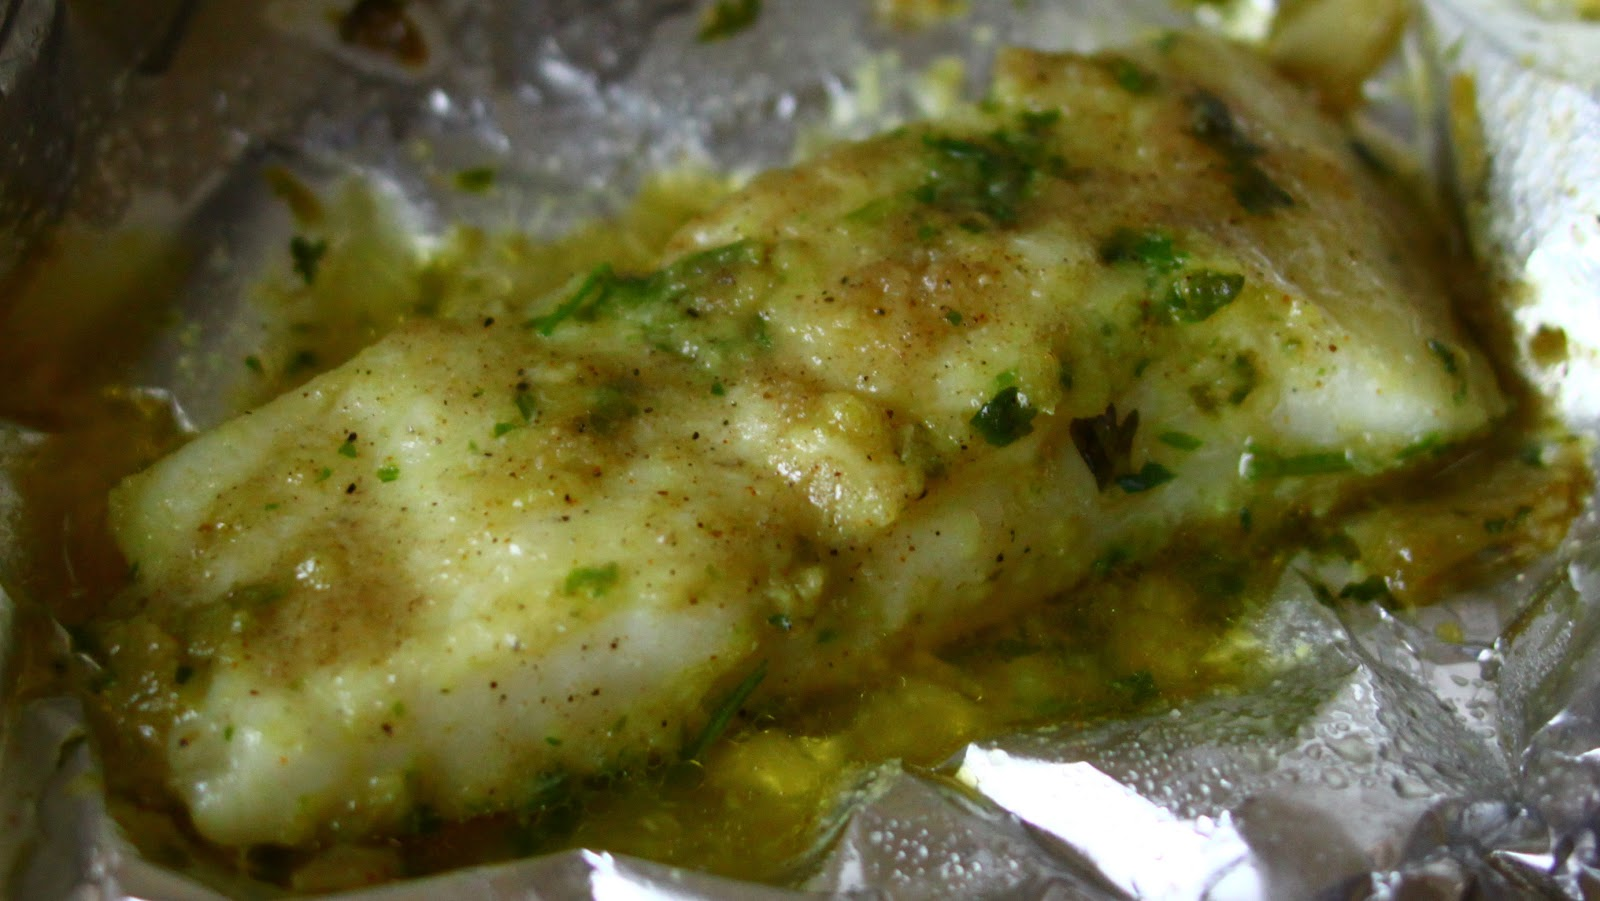 Niti agni recipes baked white fish fillet for How to bake fish fillet